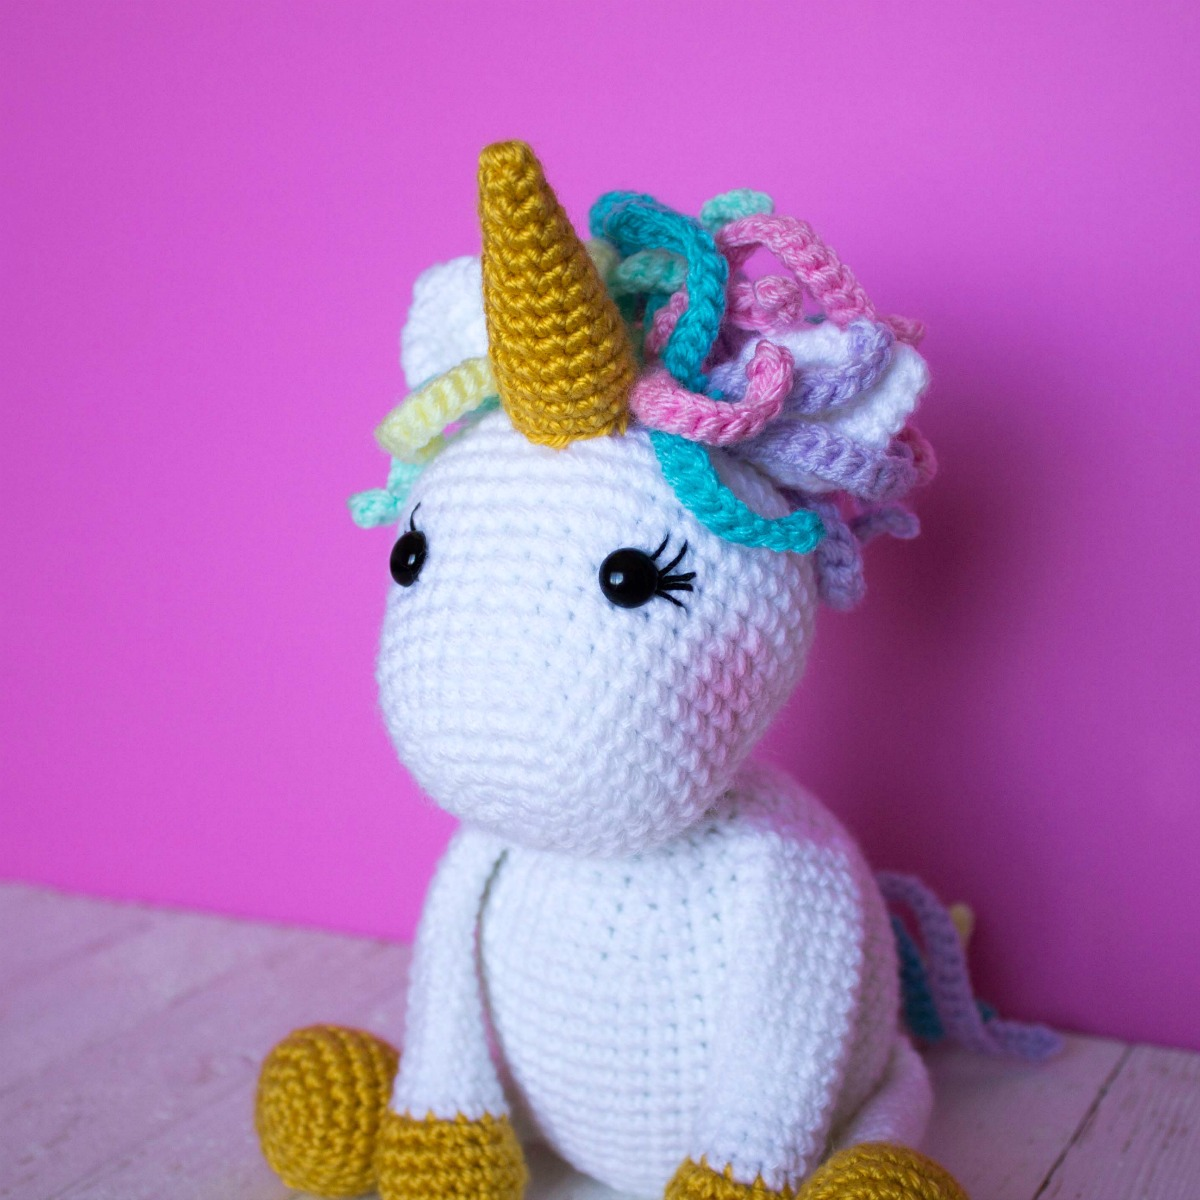 36 Amigurumi Crochet Unicorn Toy Softies Free Patterns | Unicorn ... | 1200x1200